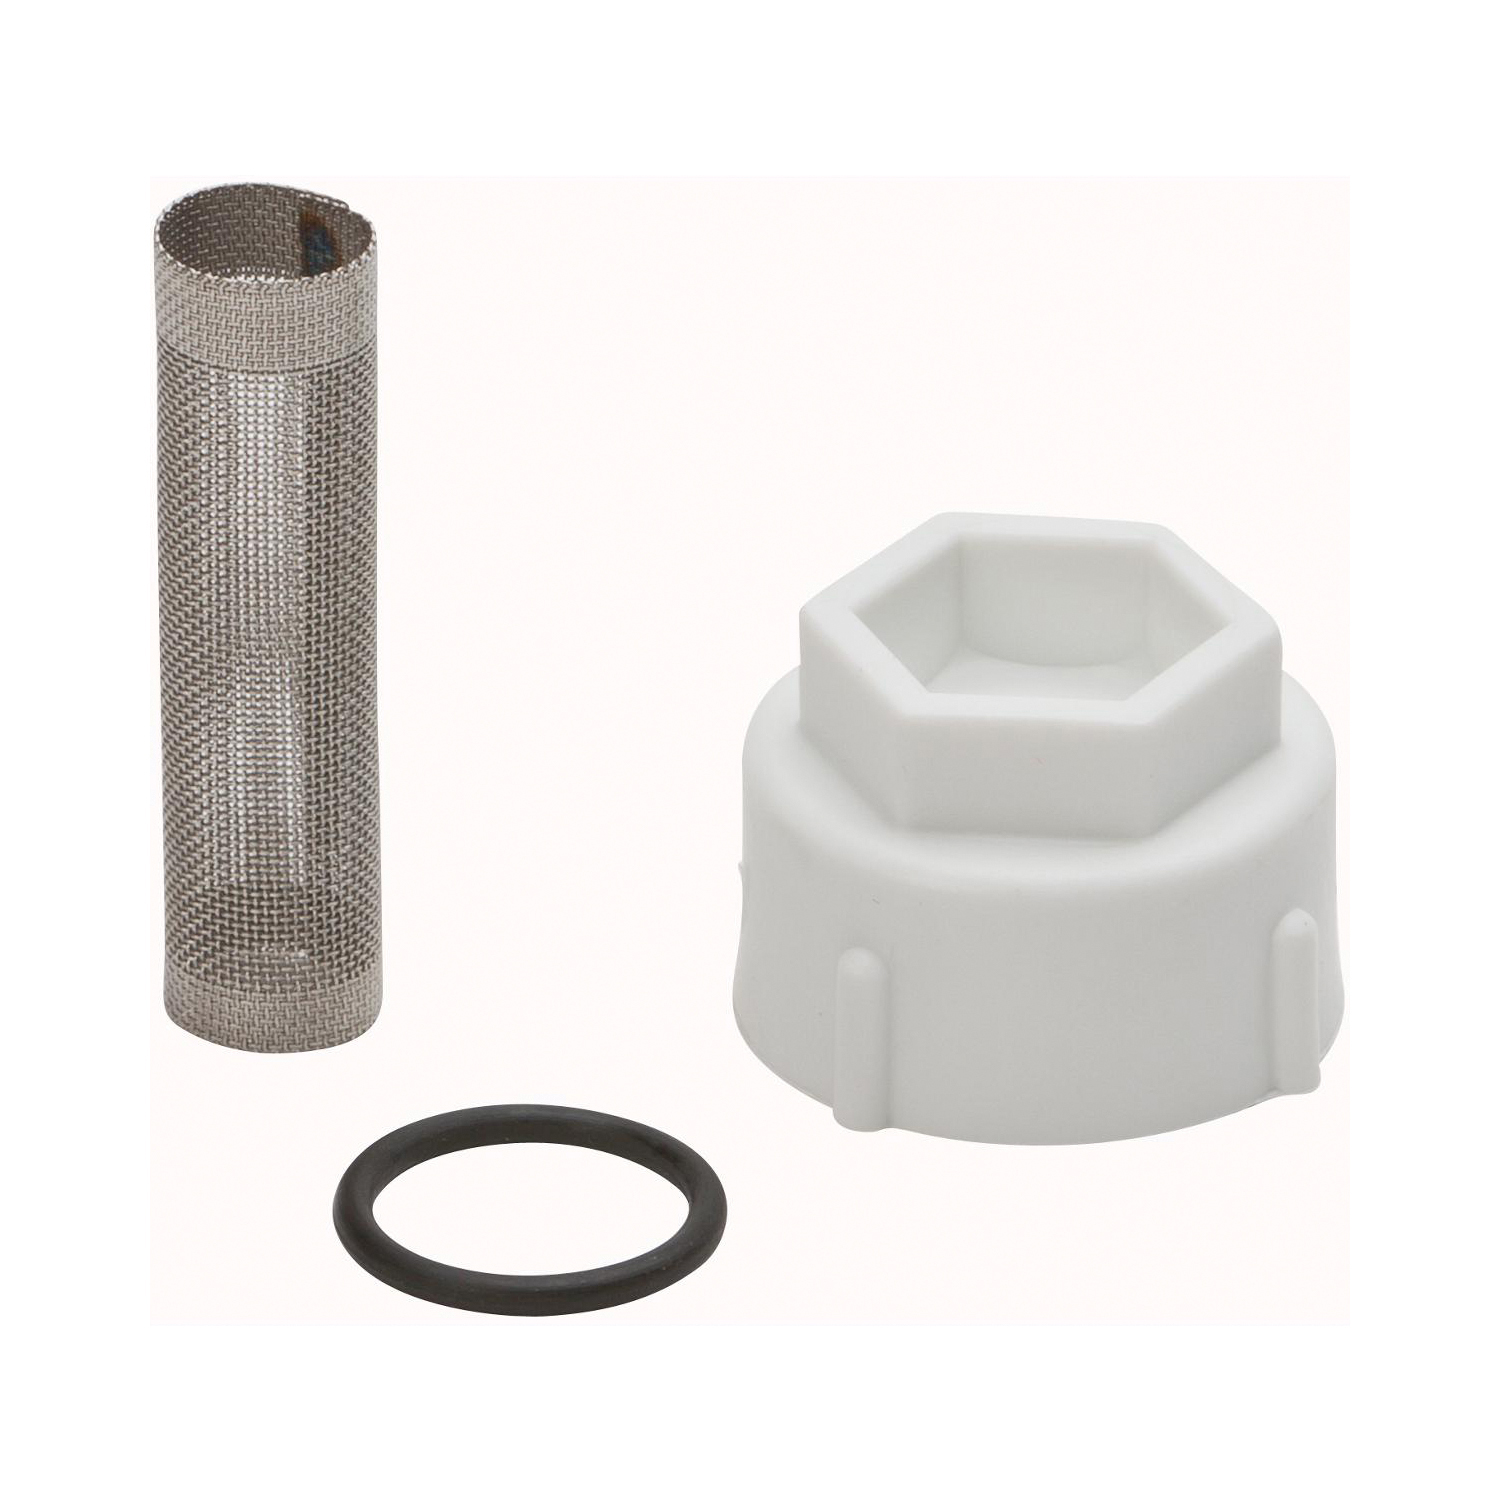 Elkay 98169C LKC/HT Replacement Solenoid Cap/Screen/O-Ring Kit, For Use With LKC Series Classroom/Institutional Faucet, Hasley Taylor Water Cooler